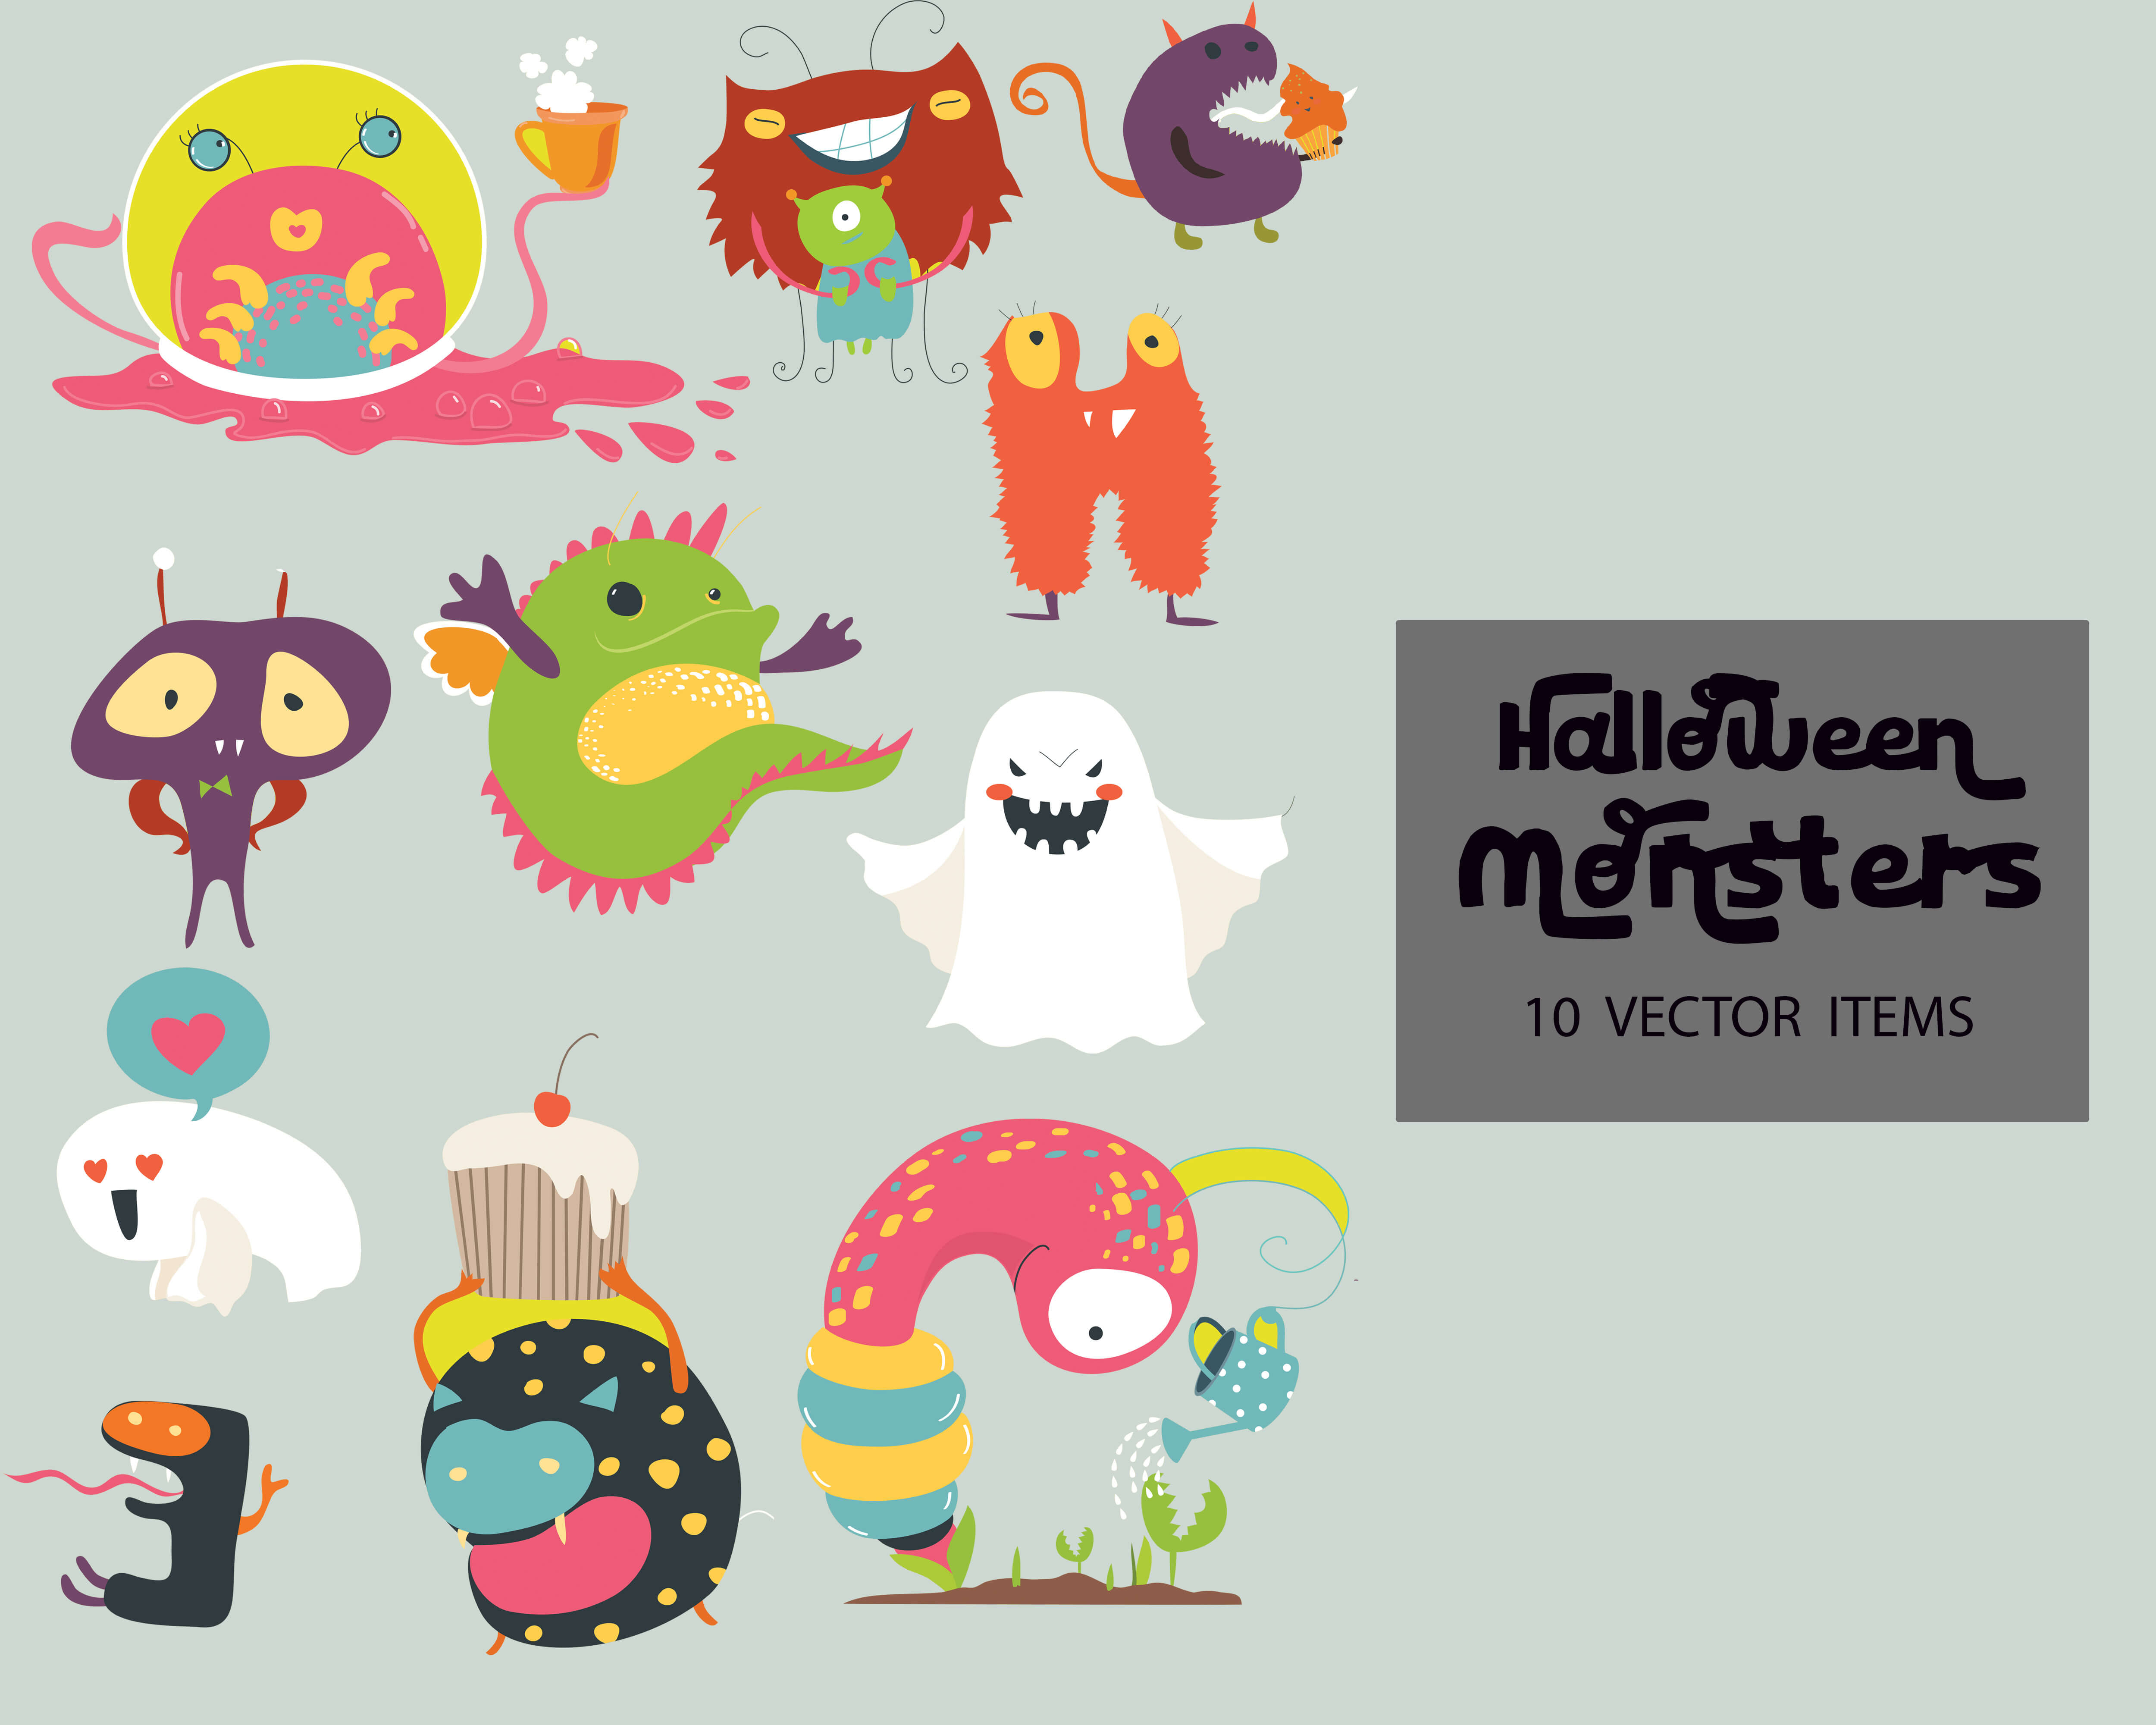 Spooky Vector Images - 10 Halloween Monsters